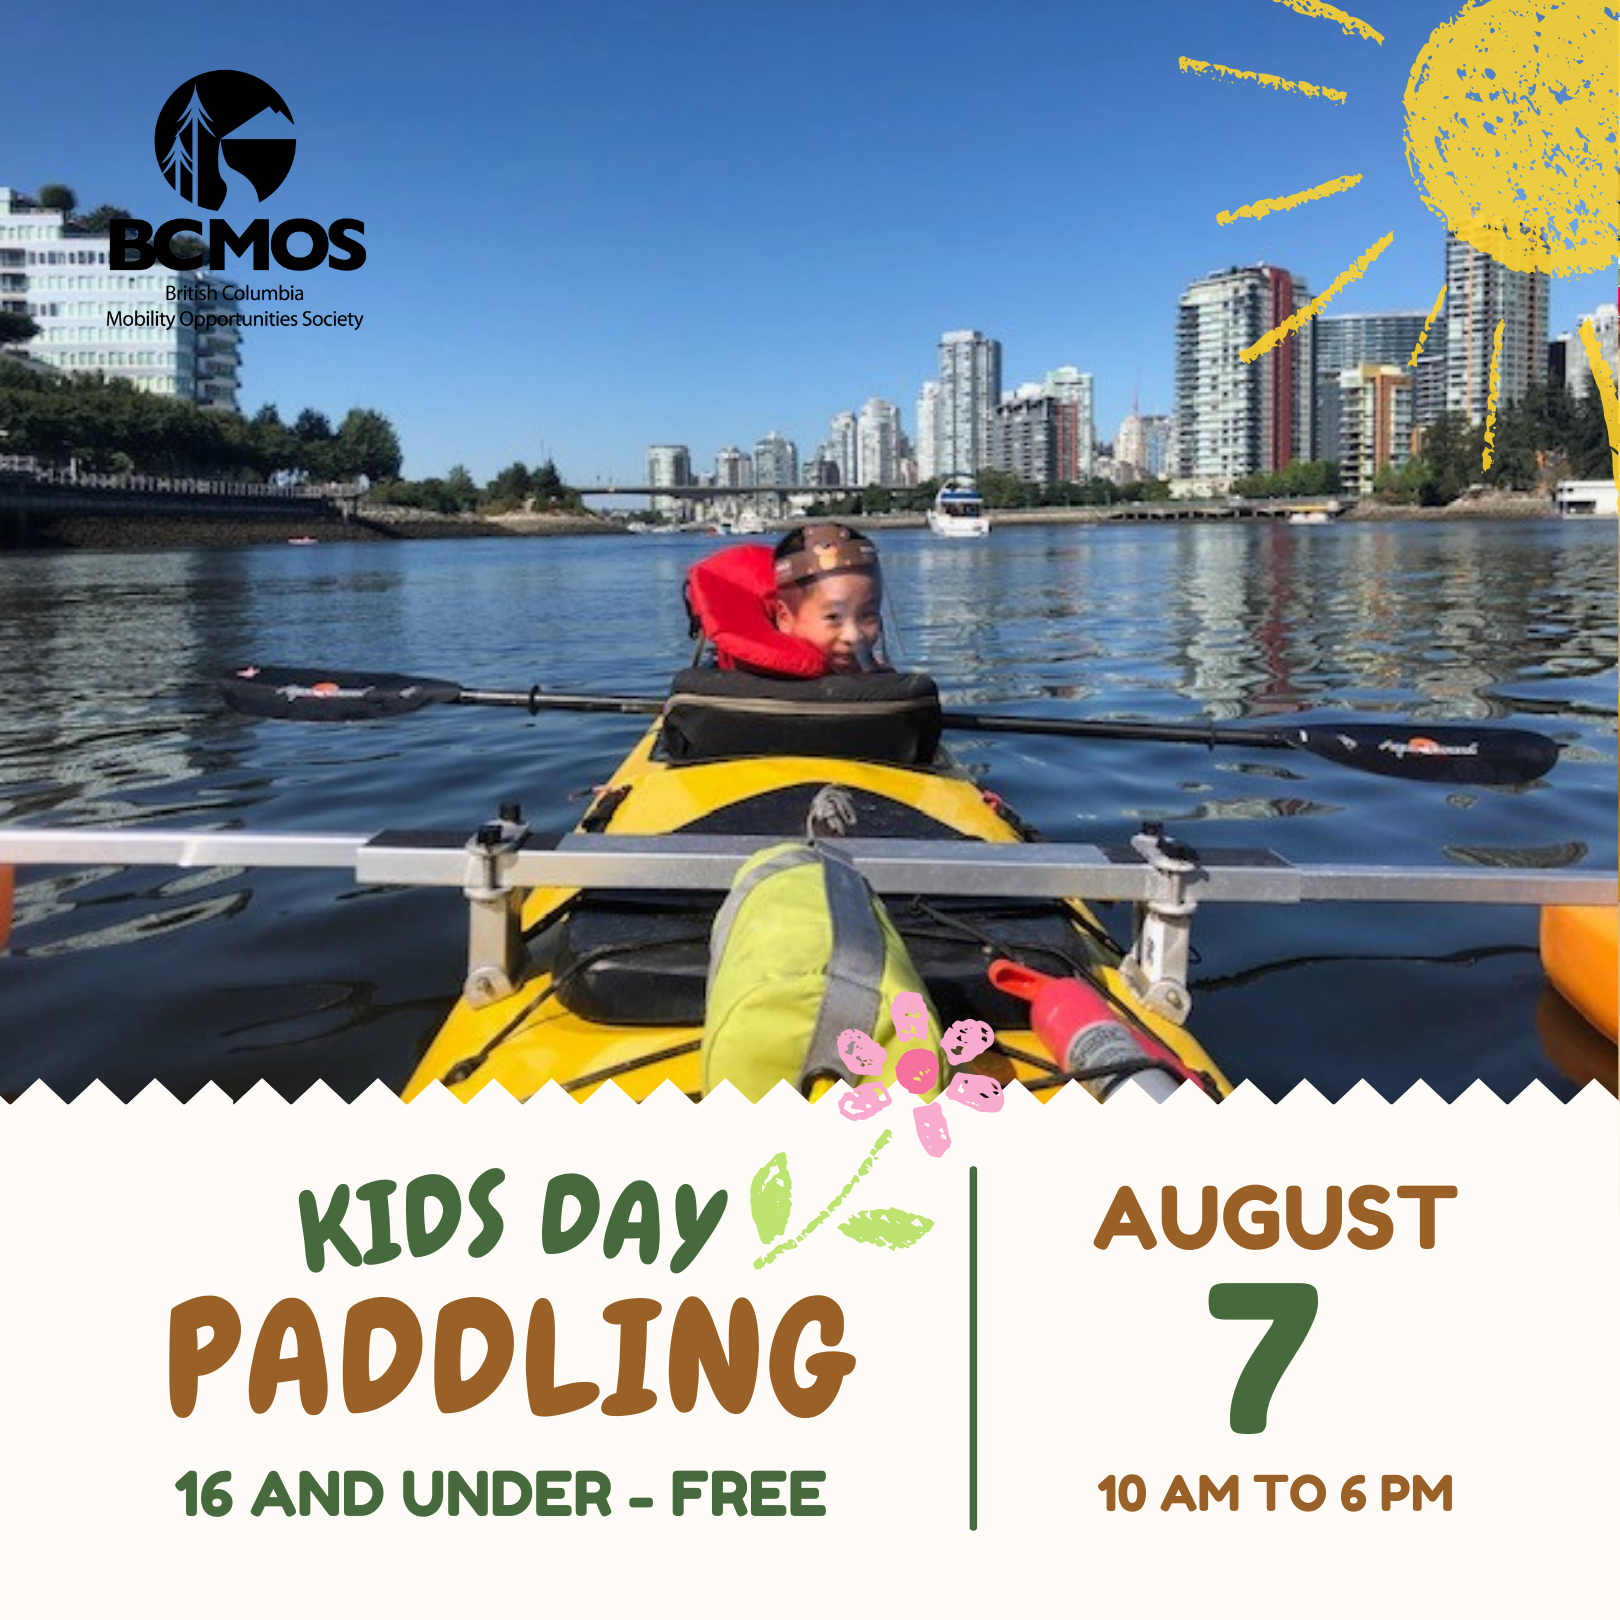 Young boy in the front seat of a kayak looking back at the camera. Kids day paddling, august 7th 10-6pm. 16 and under free.